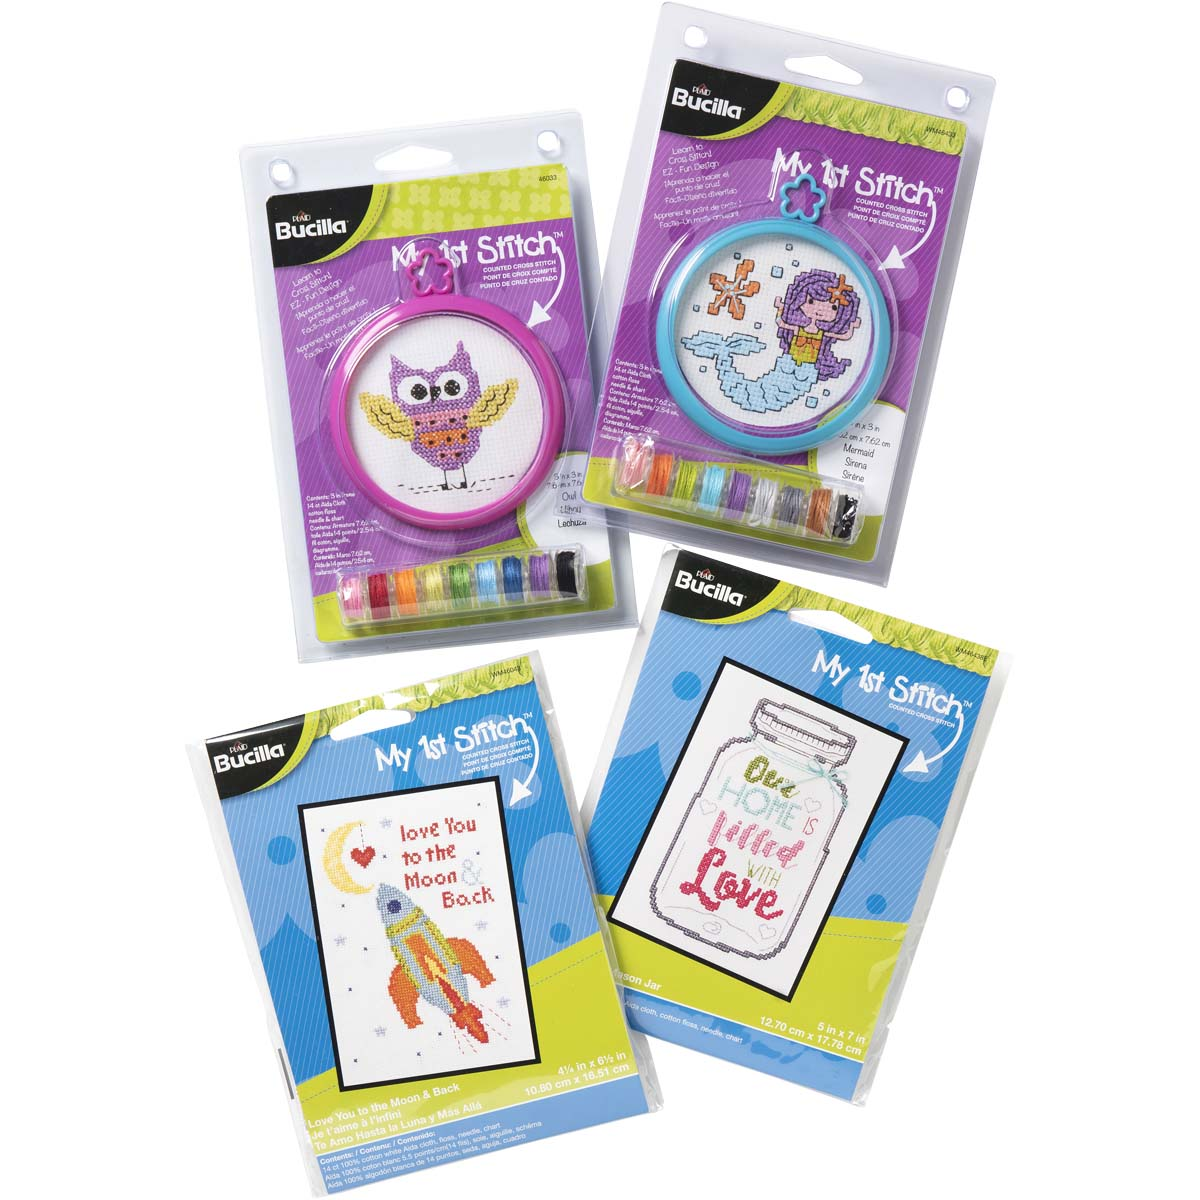 Bucilla ® My 1st Stitch™ Counted Cross Stitch Bundle - PROMOBCSB